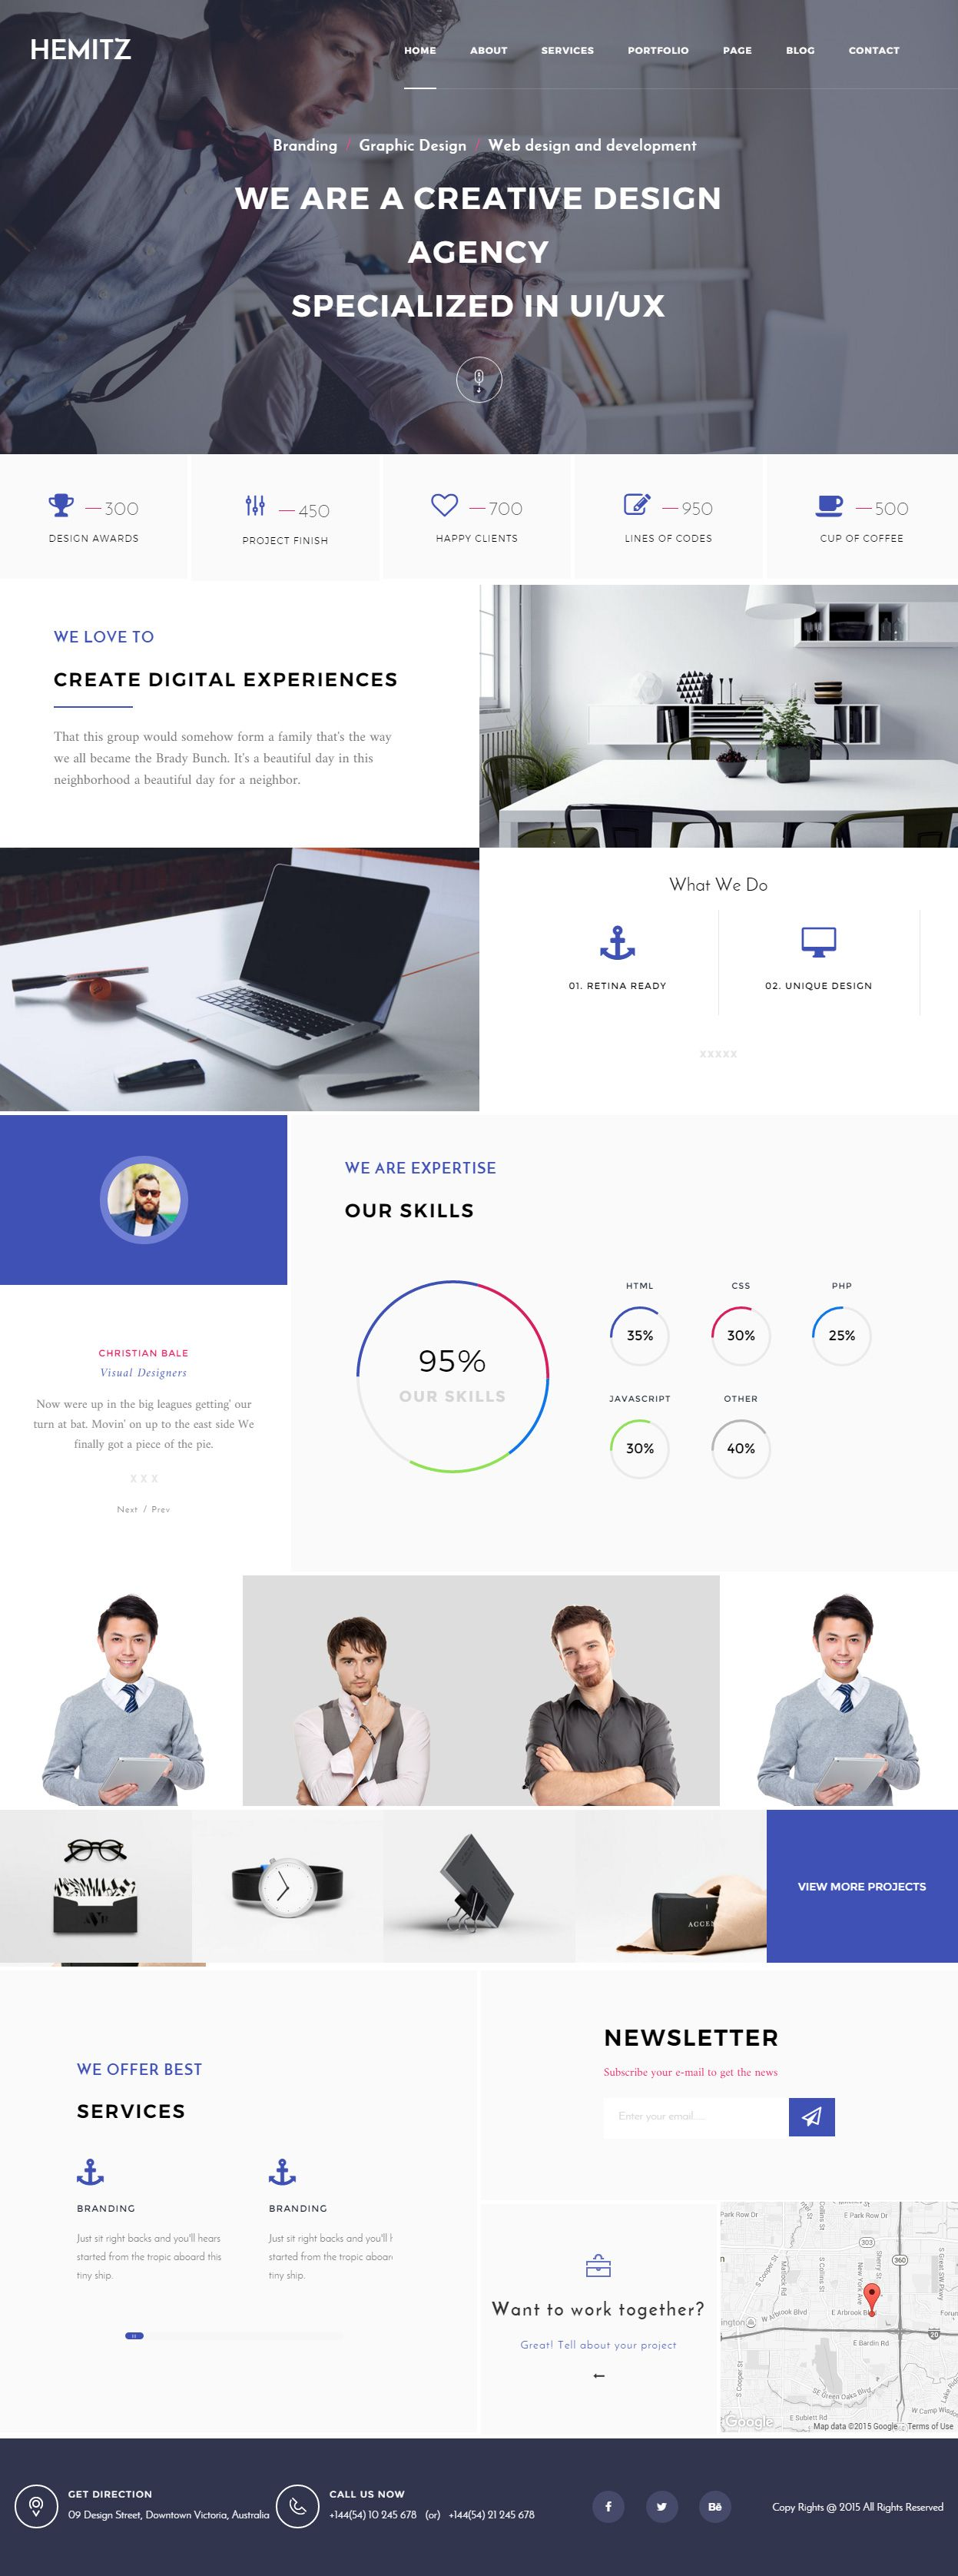 Hemitz is premium responsive retina portfolio html template it can be used for creative agencies to show porfolio and projects you can builder portfolio website using hemitz wordpress theme template site pronofoot35fo Image collections